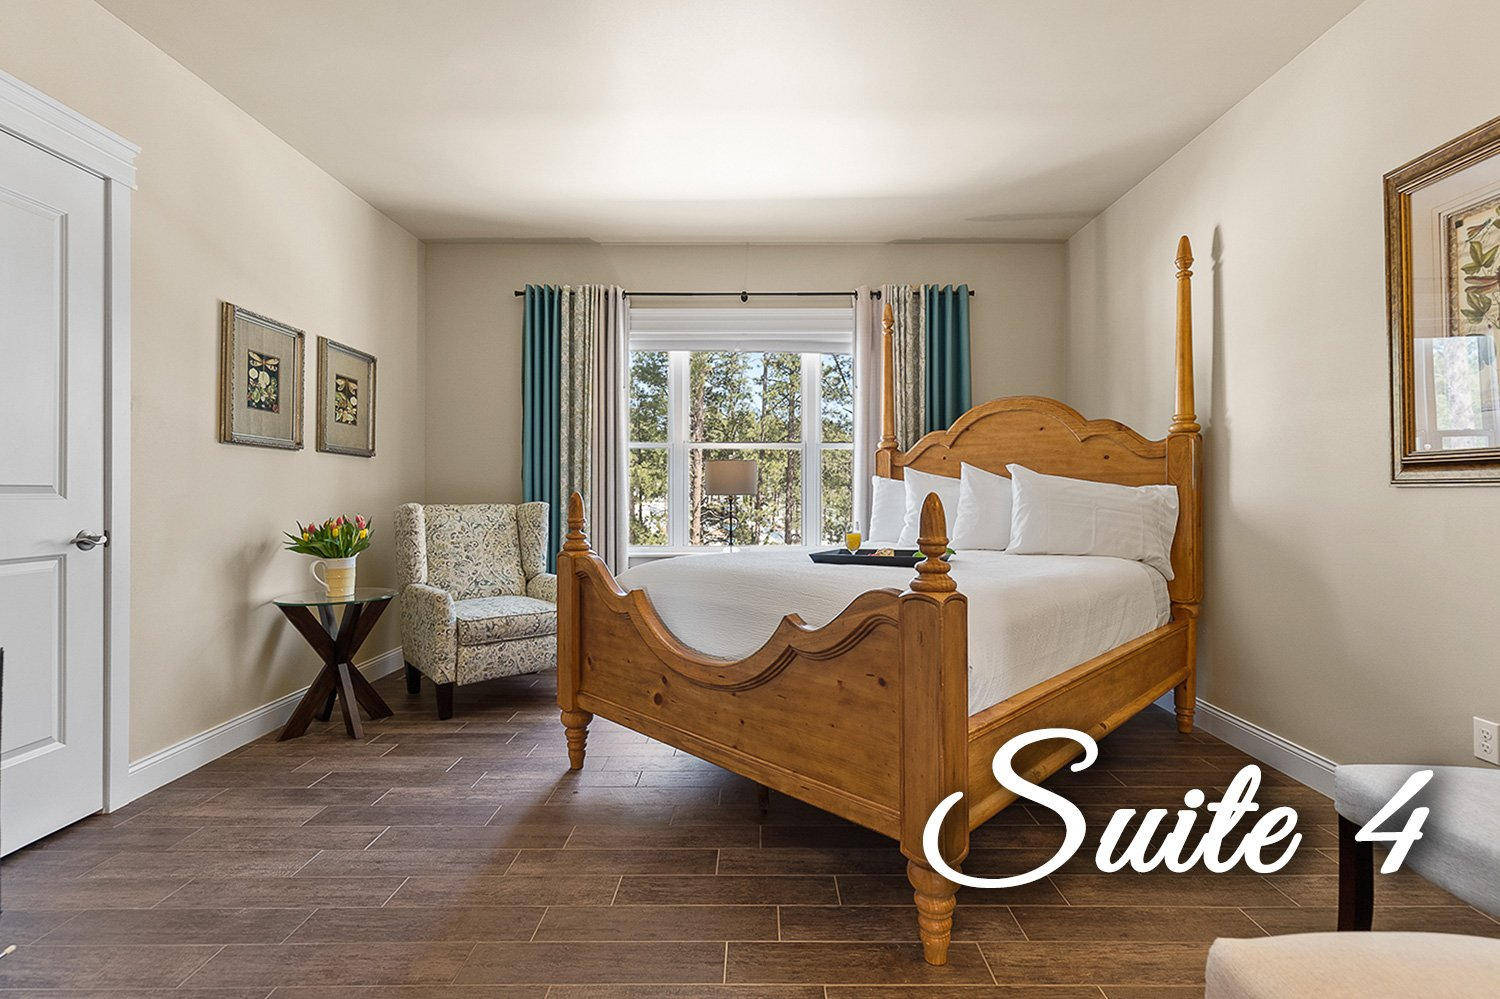 Suite 4 Bed and chair